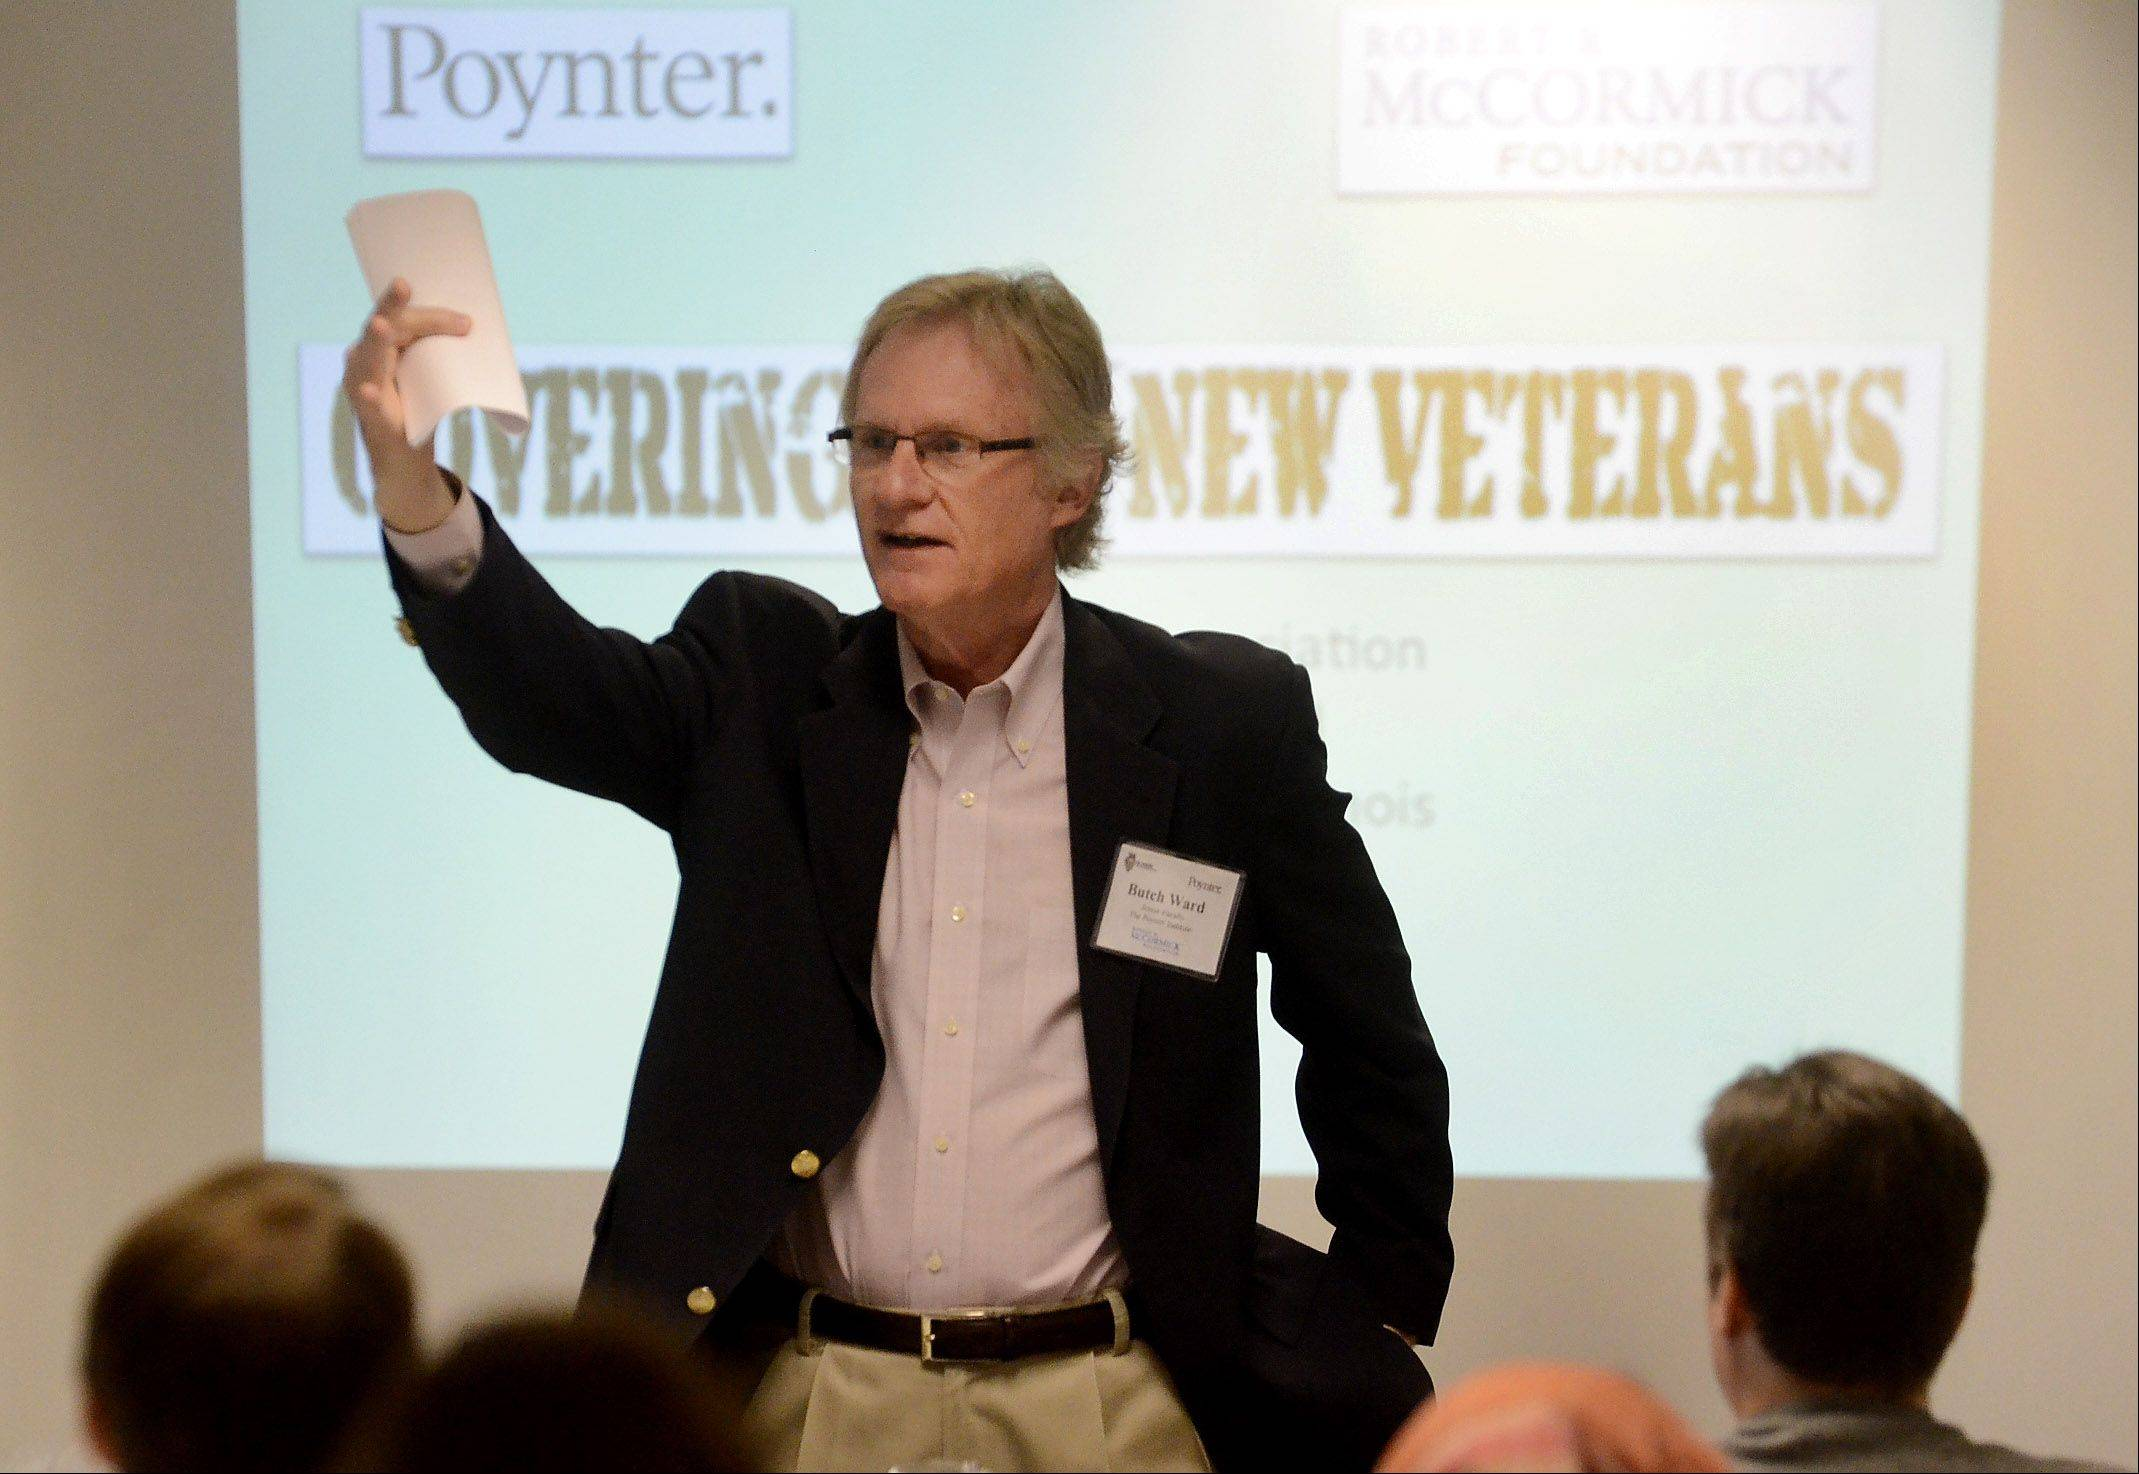 "Butch Ward, a senior faculty member at The Poynter Institute, moderates the Illinois Press Association seminar on ""Covering the New Veterans."""